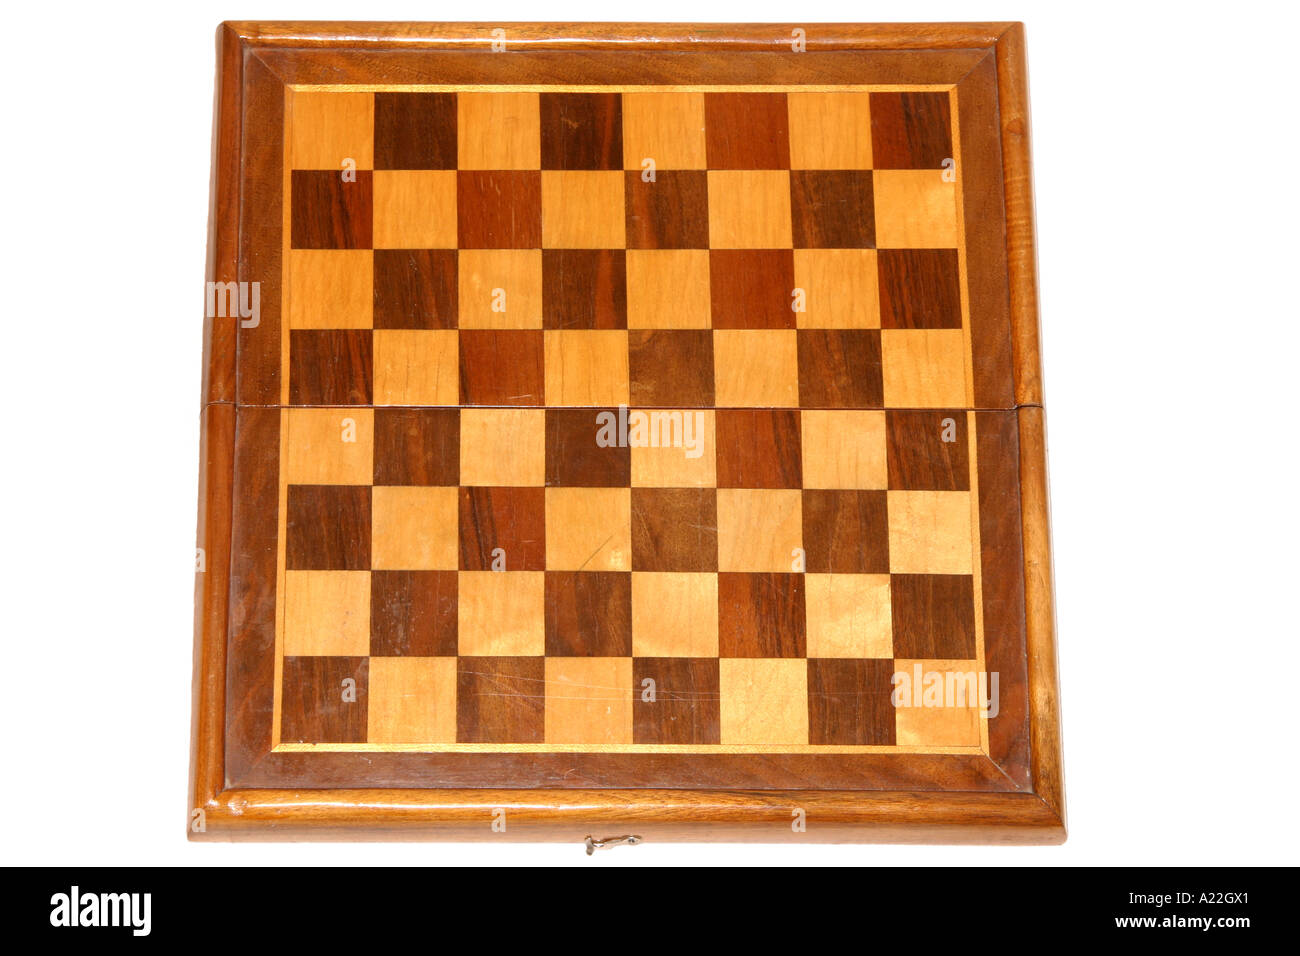 Old wooden chessboard from above - Stock Image